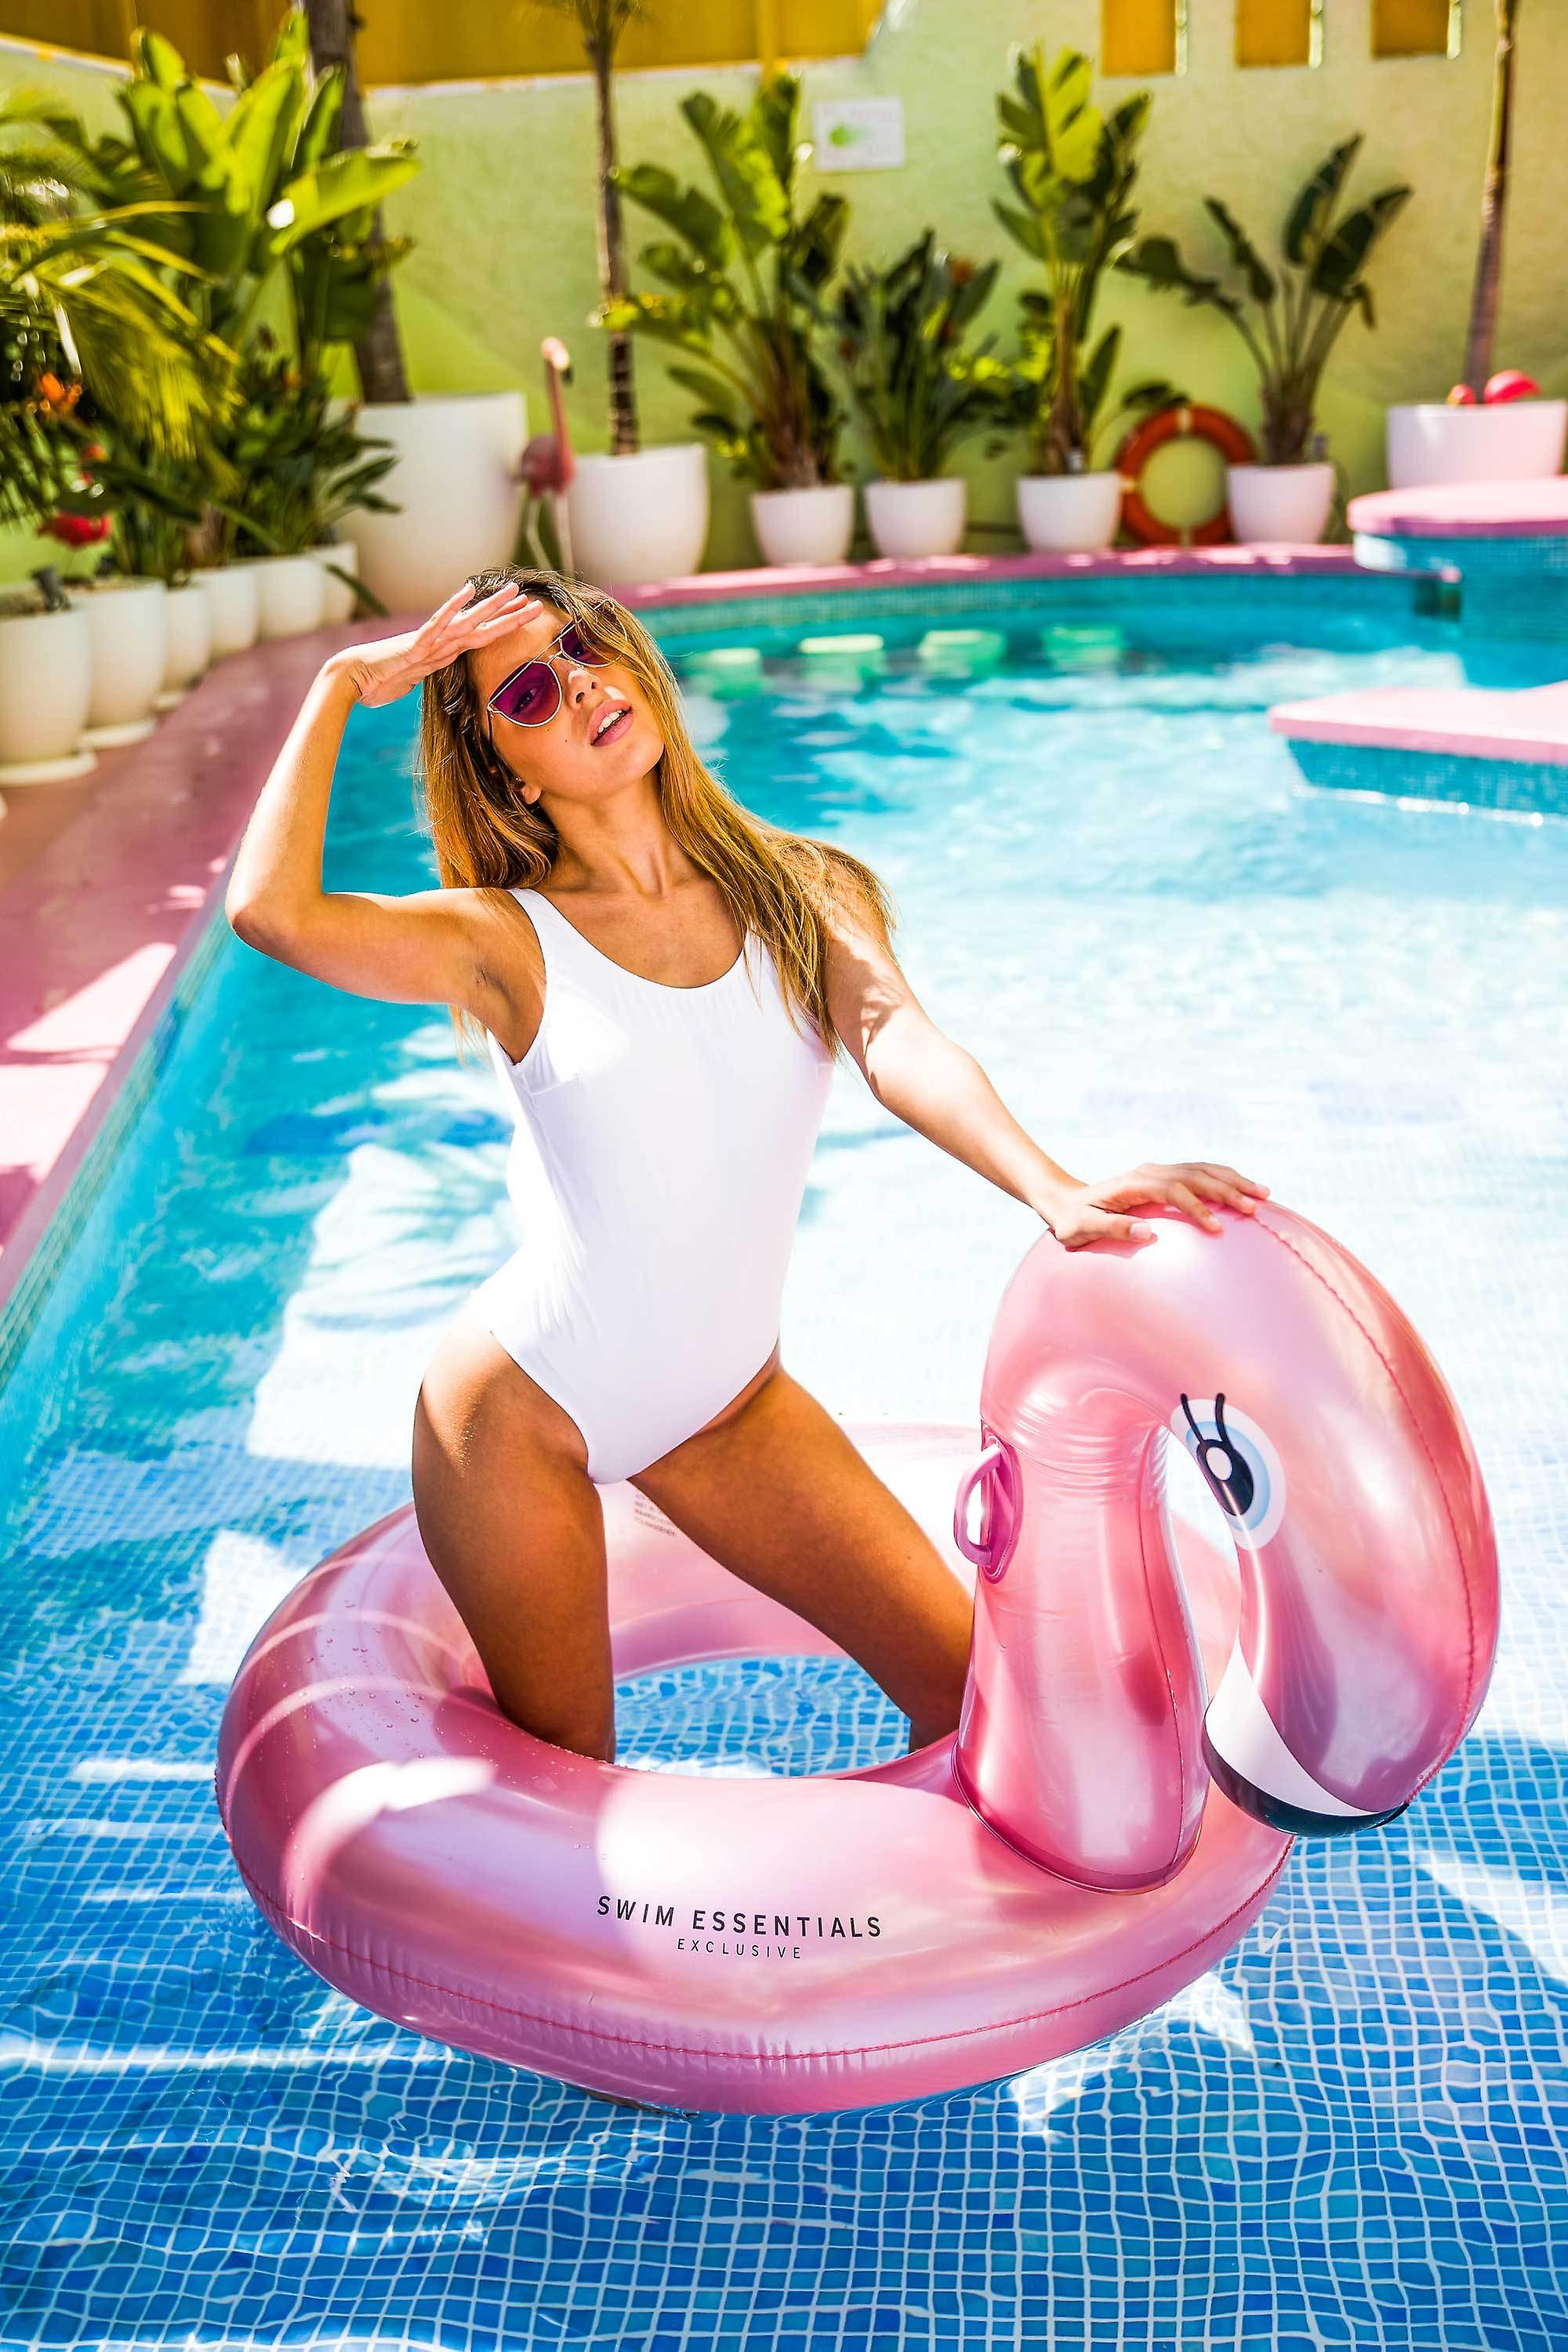 Swim Essentials Rose Gold Flamingo Swim band Inflatable